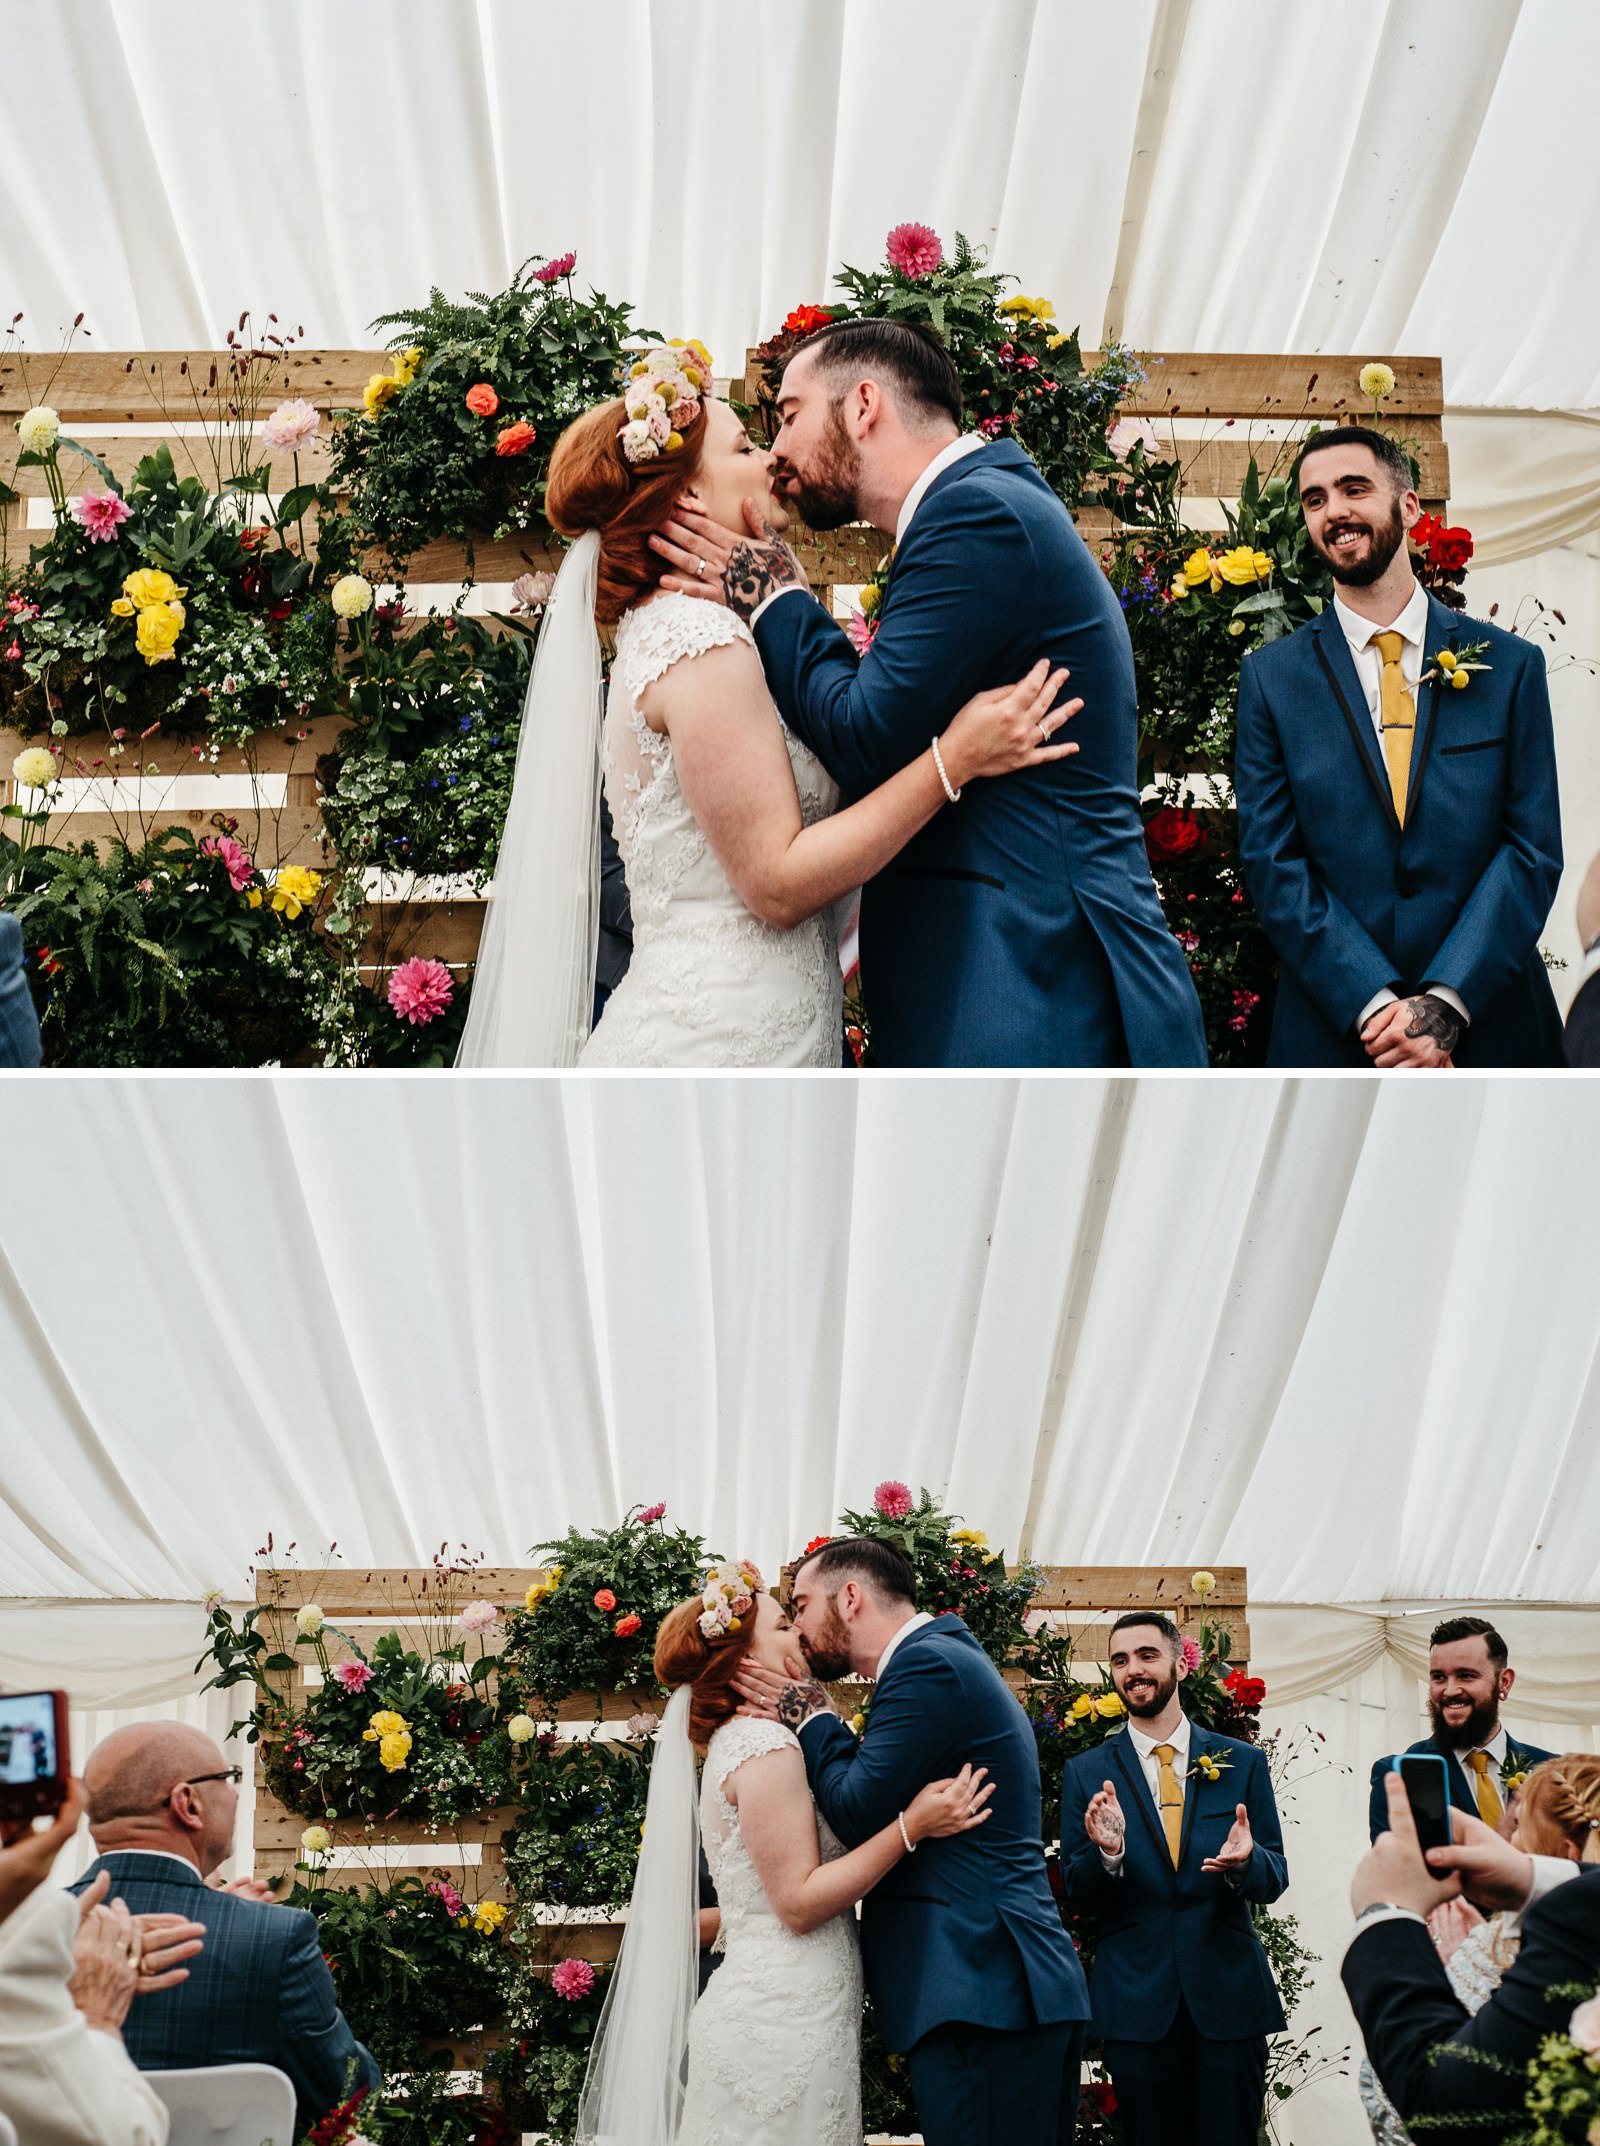 Bride and groom kiss after exchanging wedding vows